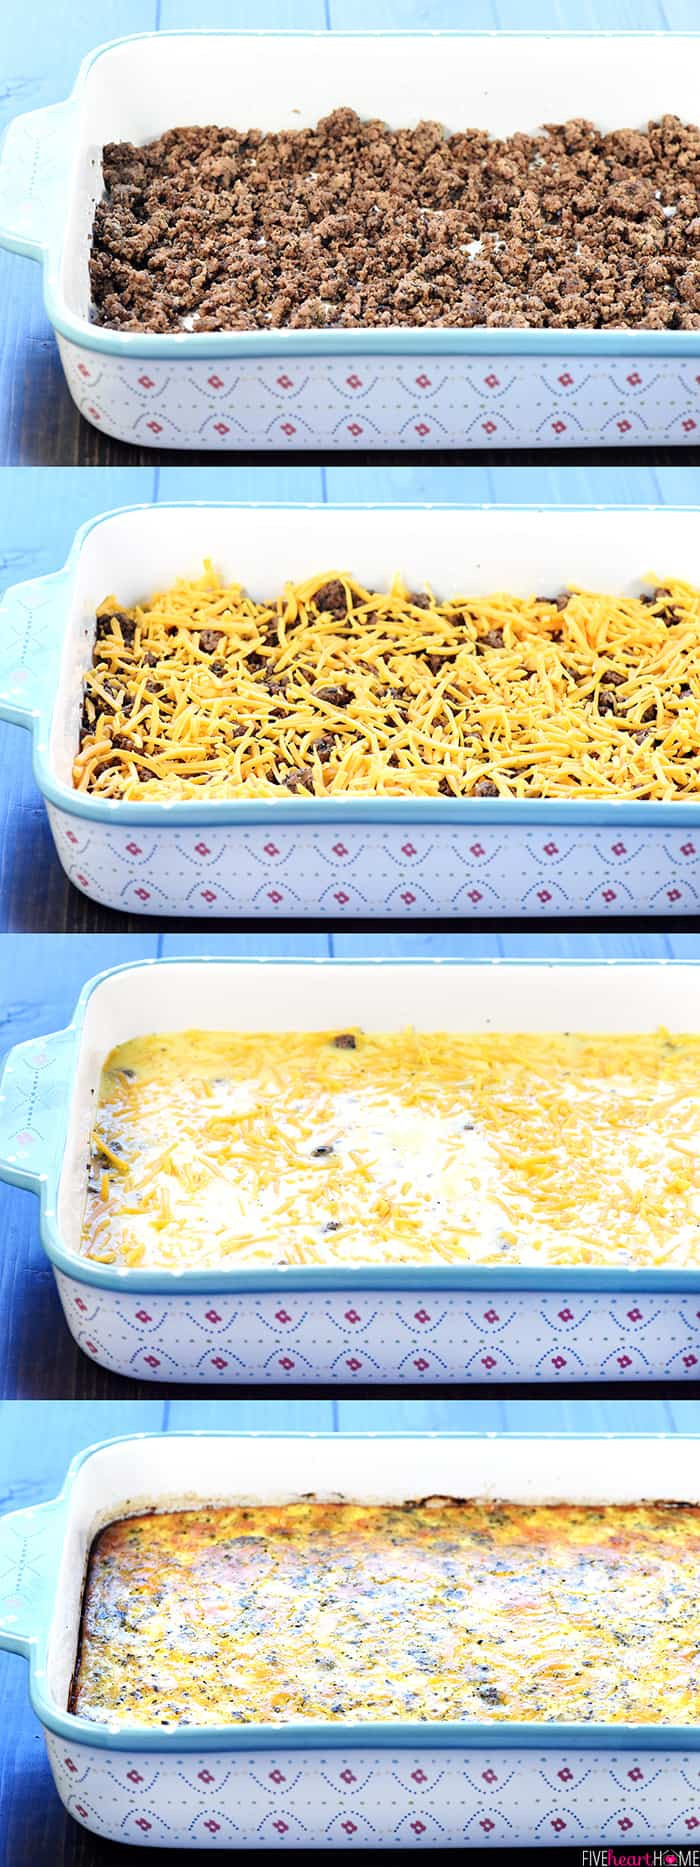 Ground Beef, Egg, & Cheese Breakfast Casserole Step by Stop from Ground Beef to Baked Casserole